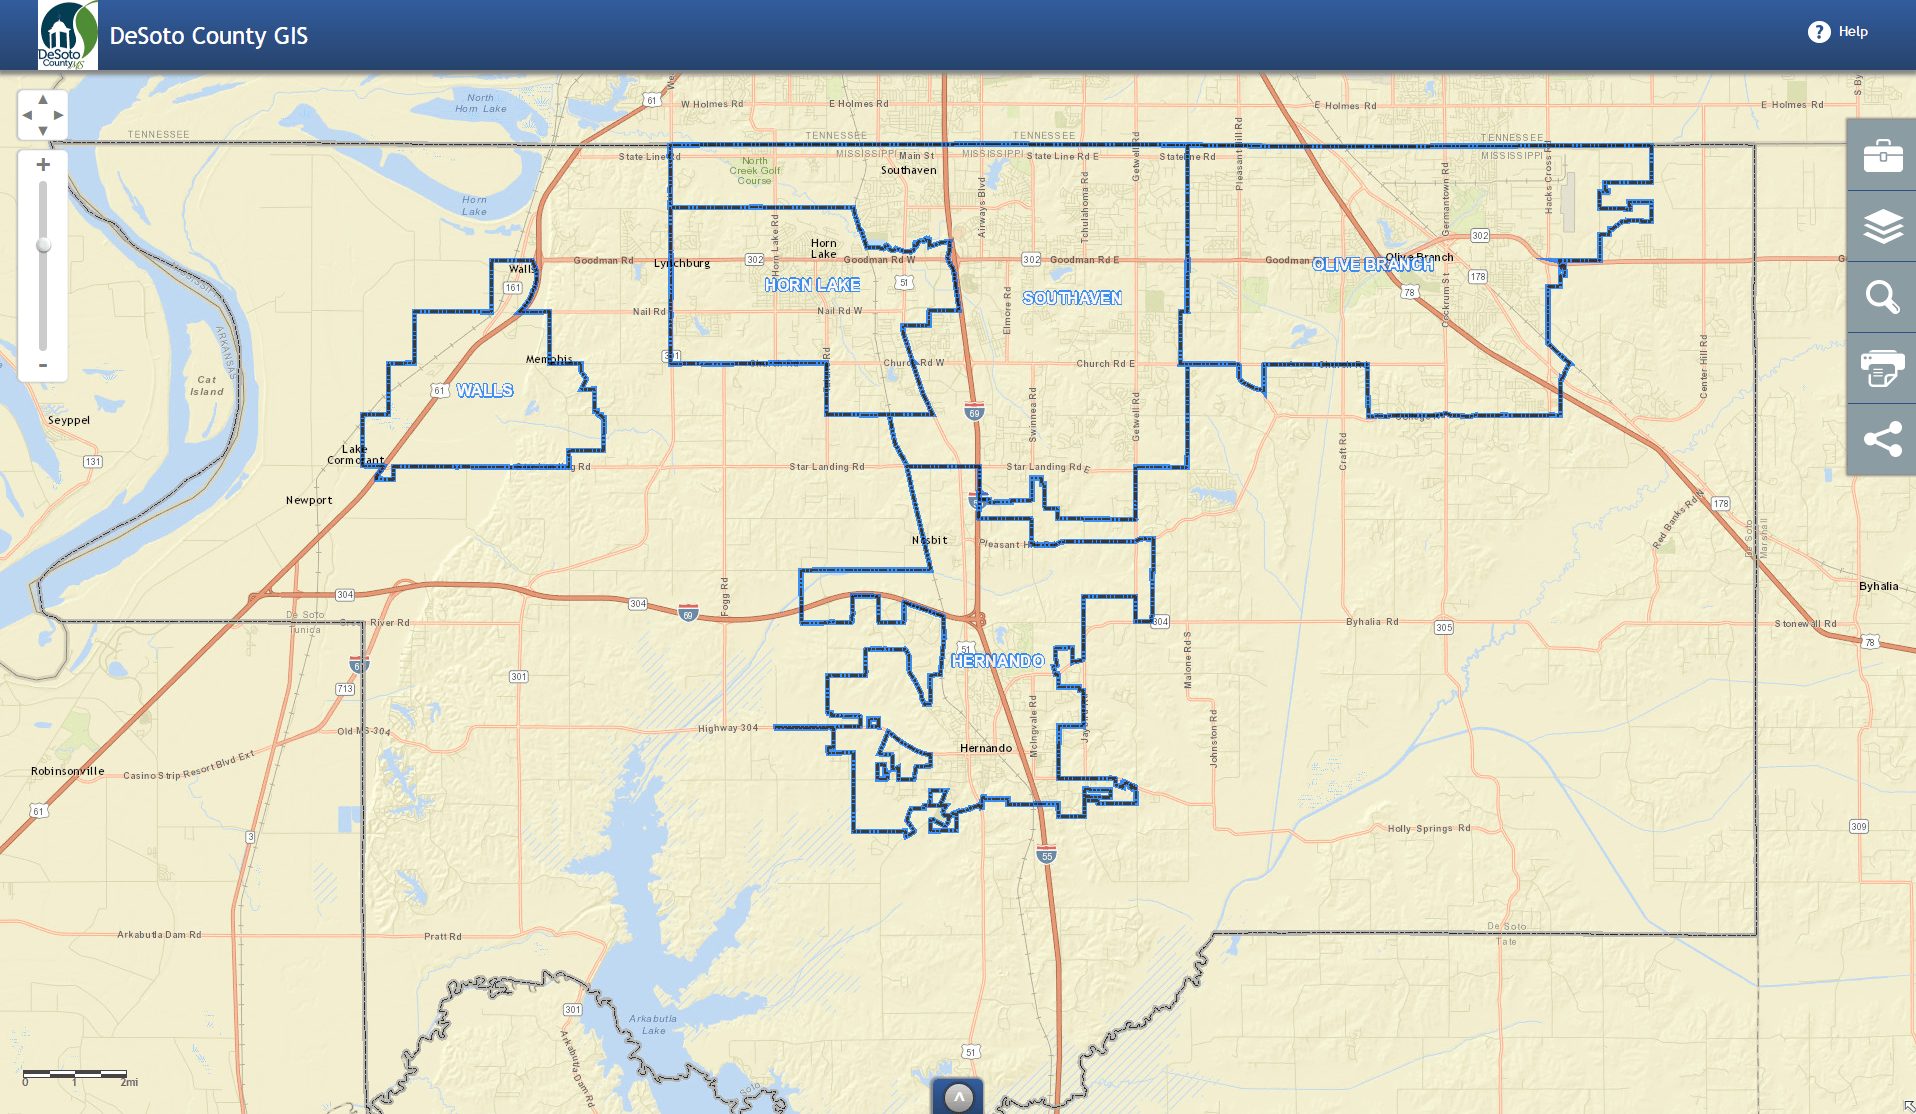 GIS | DeSoto County, MS - Official Website